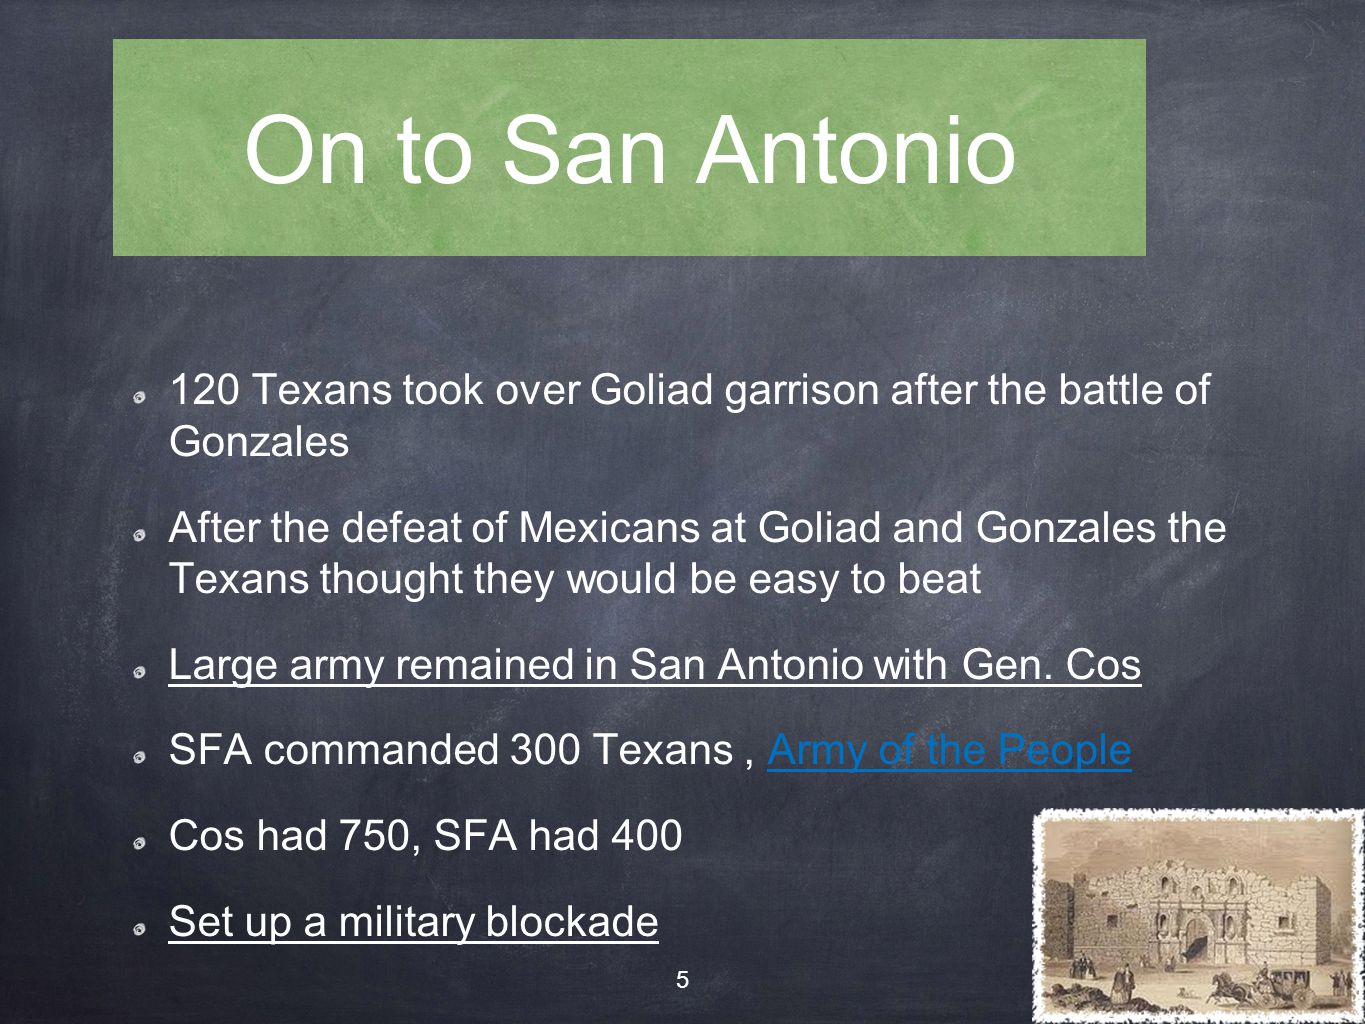 On to San Antonio 120 Texans took over Goliad garrison after the battle of Gonzales.